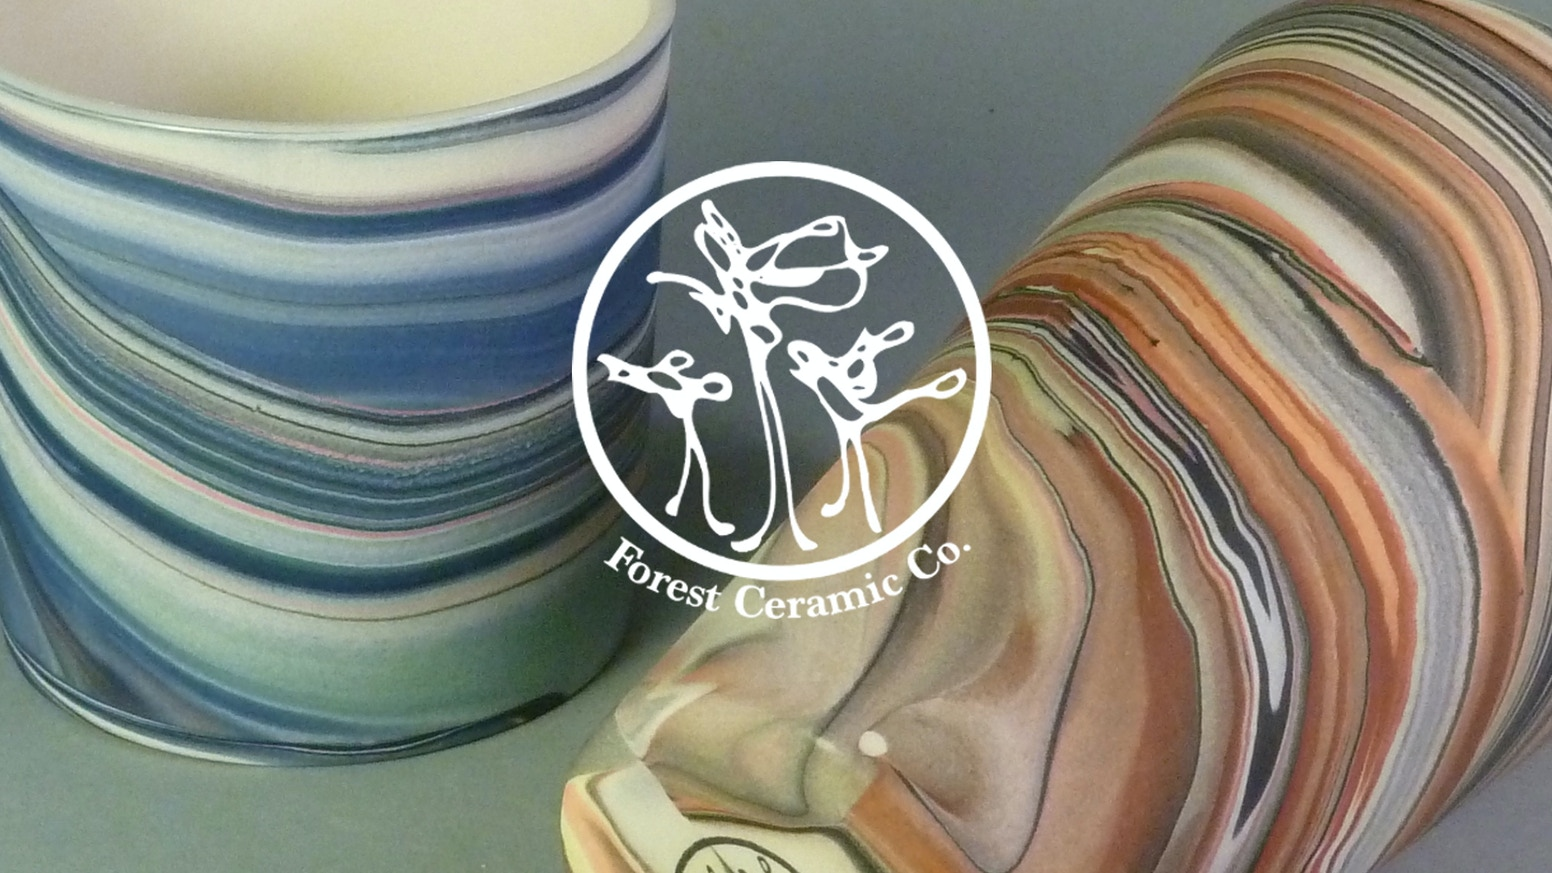 Patterned Porcelain Cup Series by Forest Ceramic Company by